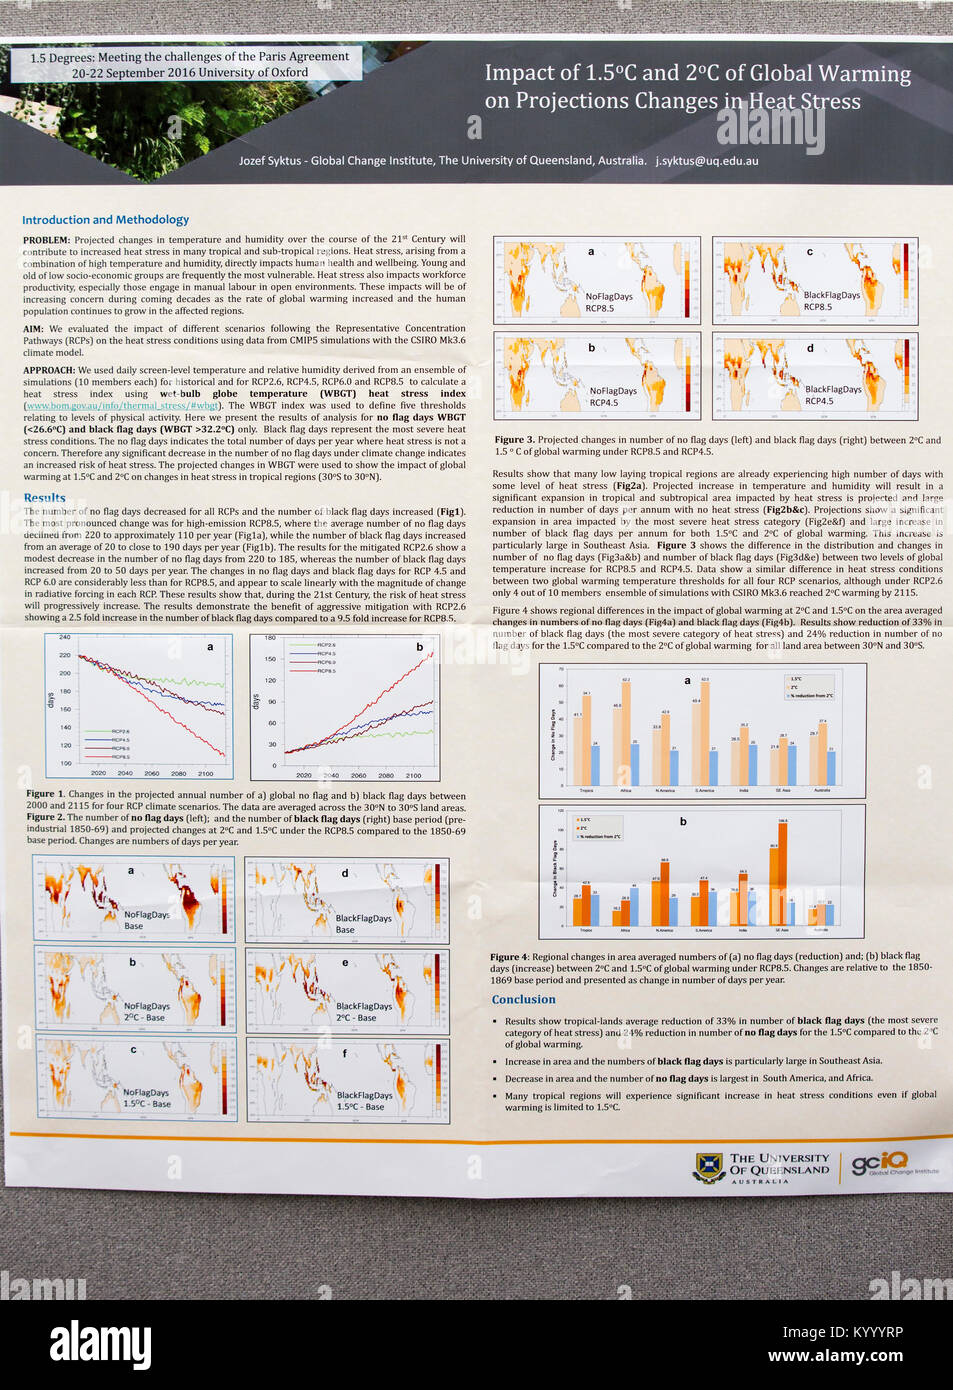 A poster about heat stress at a climate change conference held at Keble College, Oxford, UK. - Stock Image